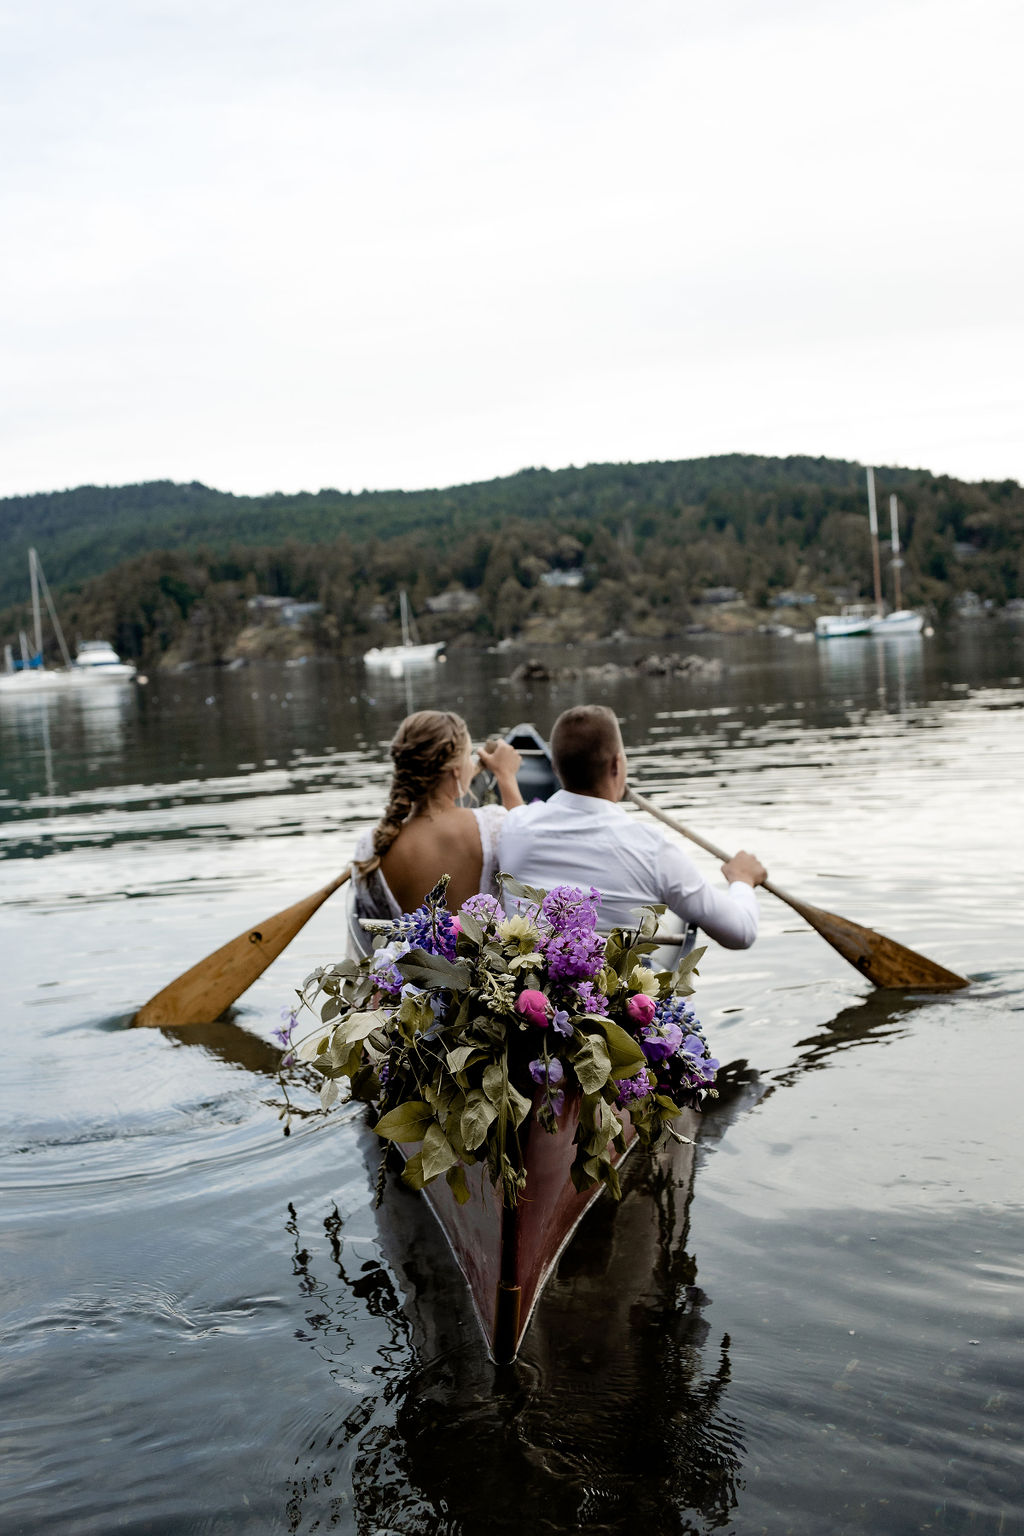 Newlyweds paddle canoe filled with purple and pink flowers on Vancouver Island